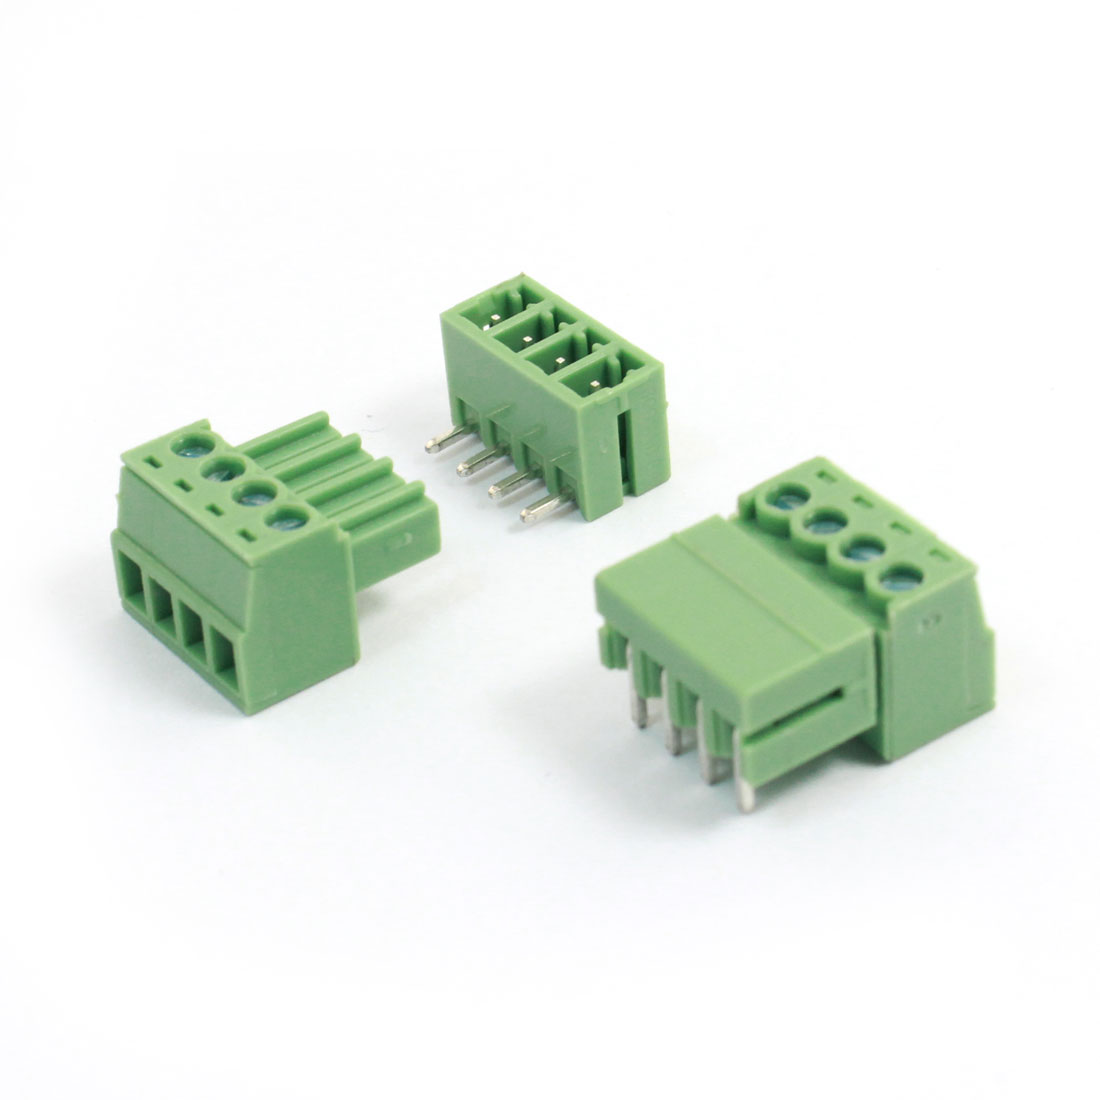 2pcs 3.5mm Pitch 4 Pins AC 300V 8A Terminal Blocks Connectors Green